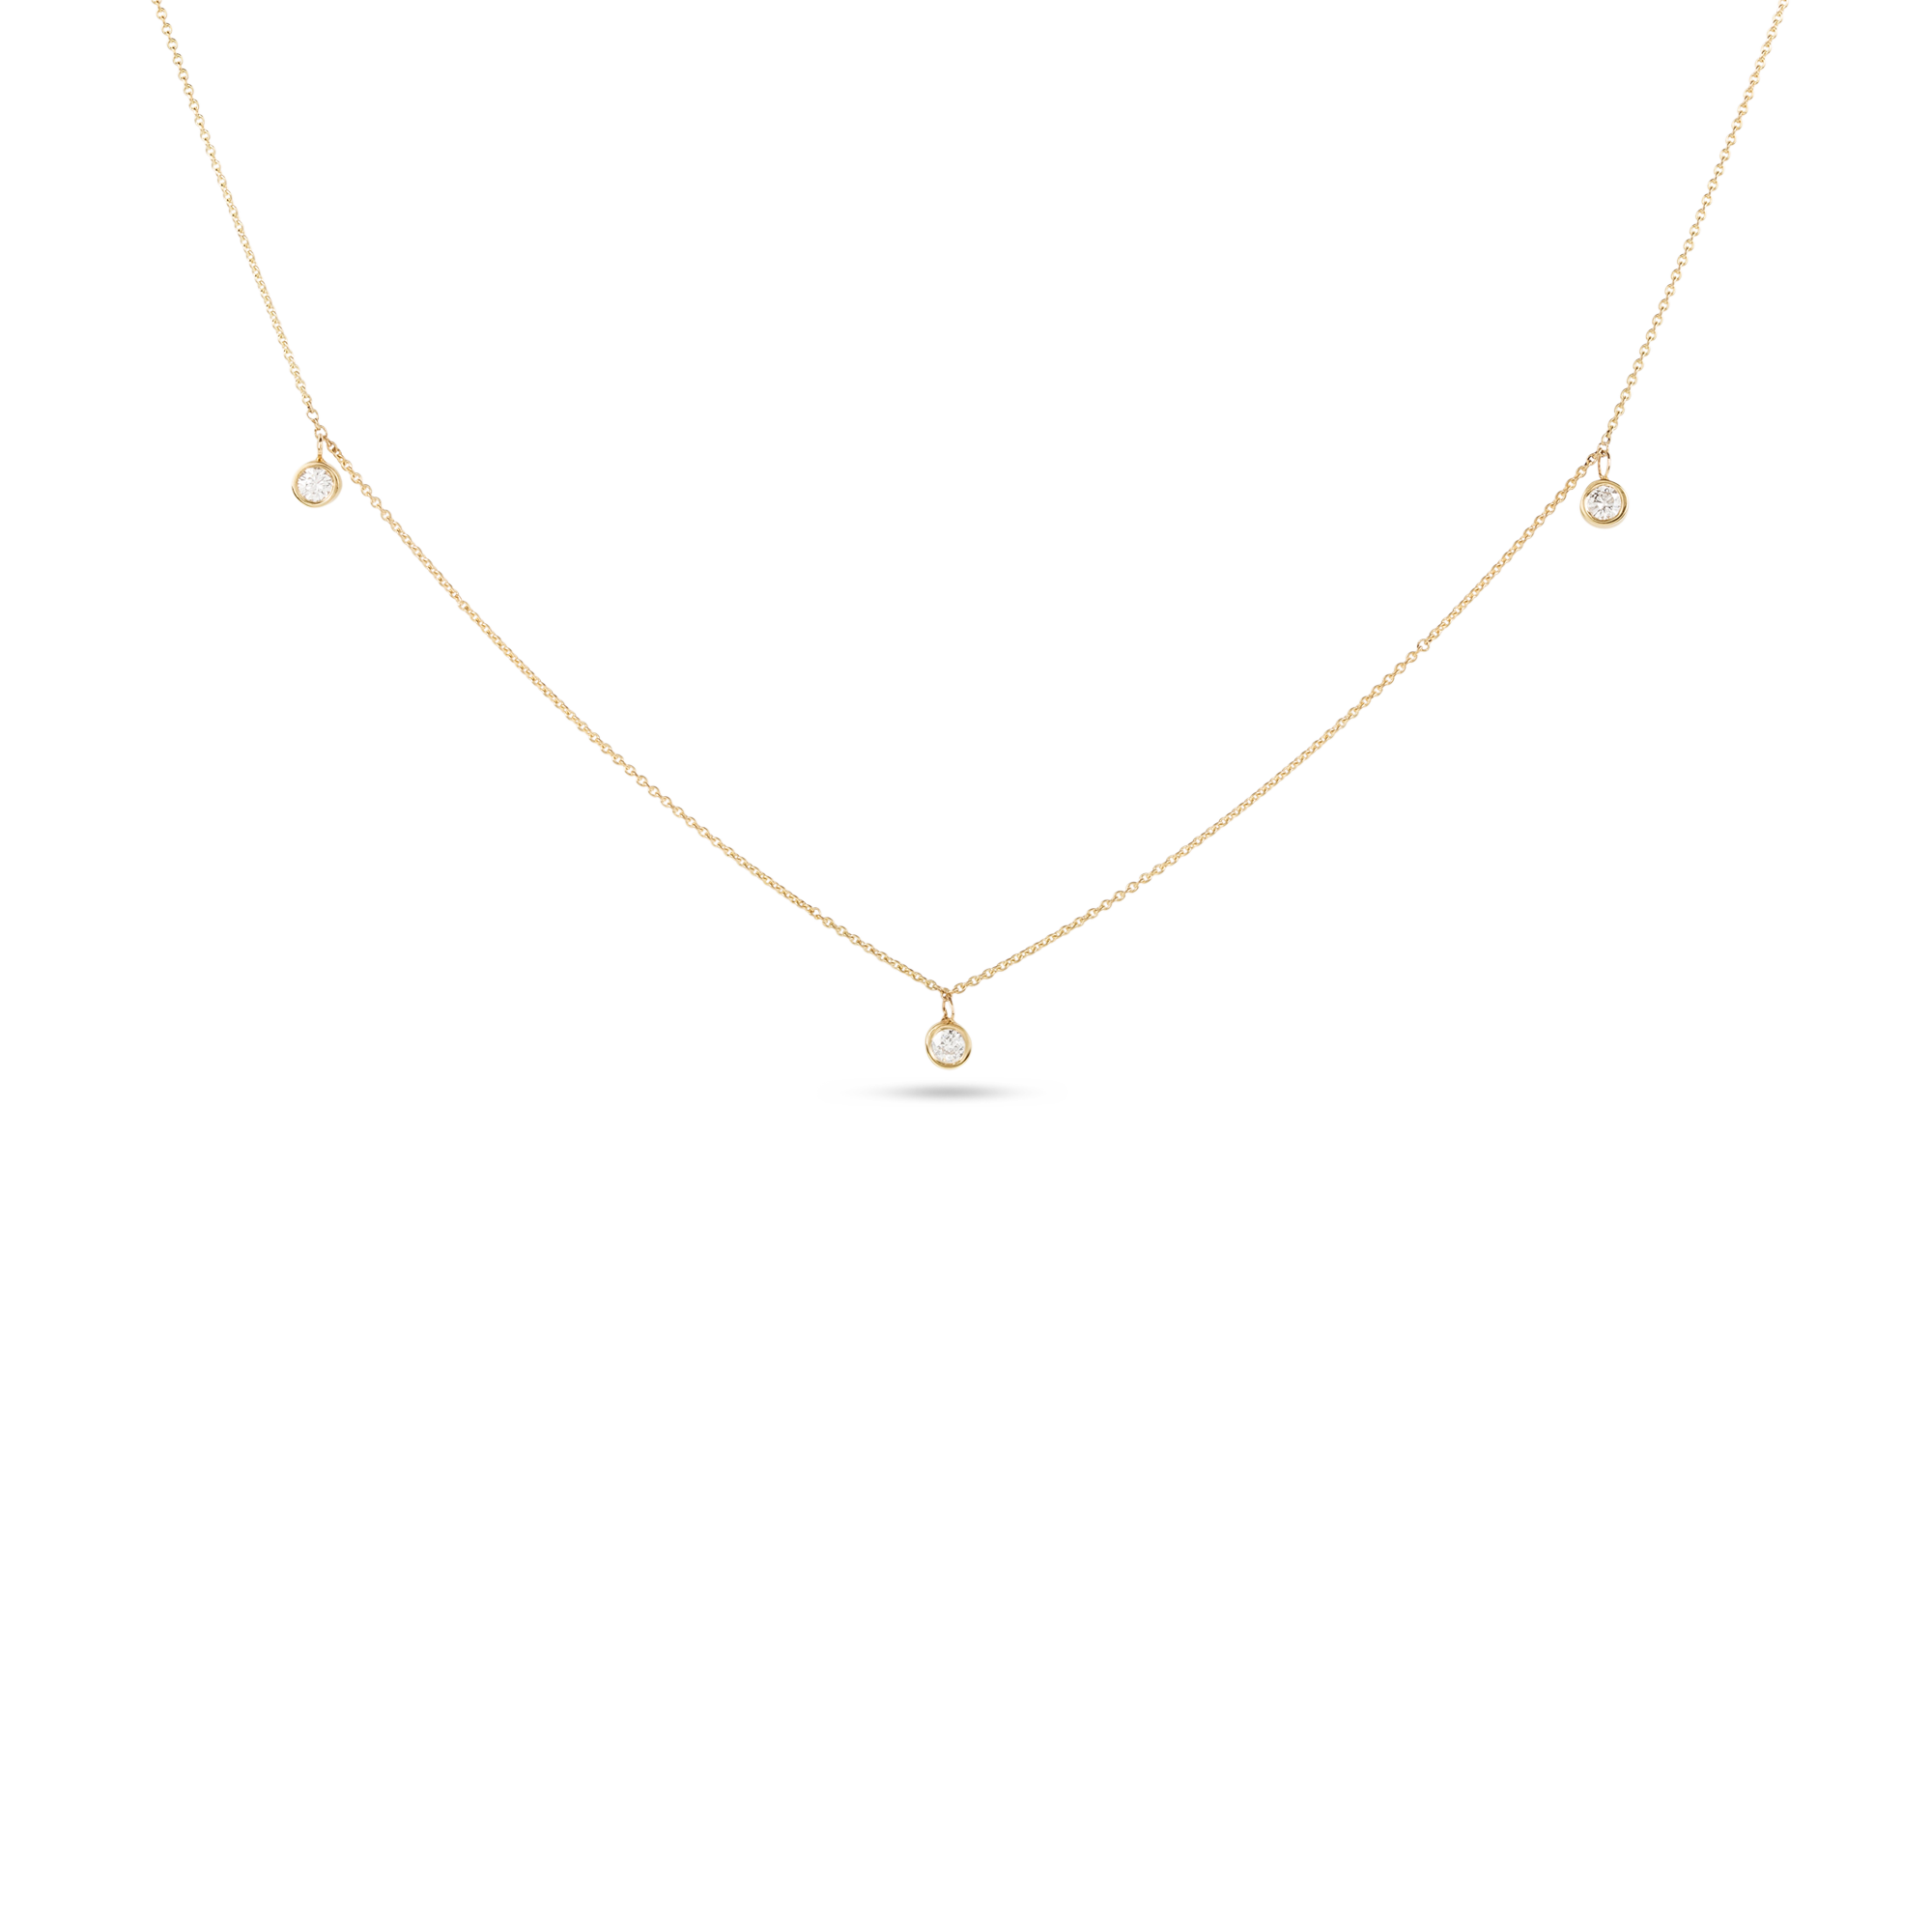 Three Diamond Choker Necklace